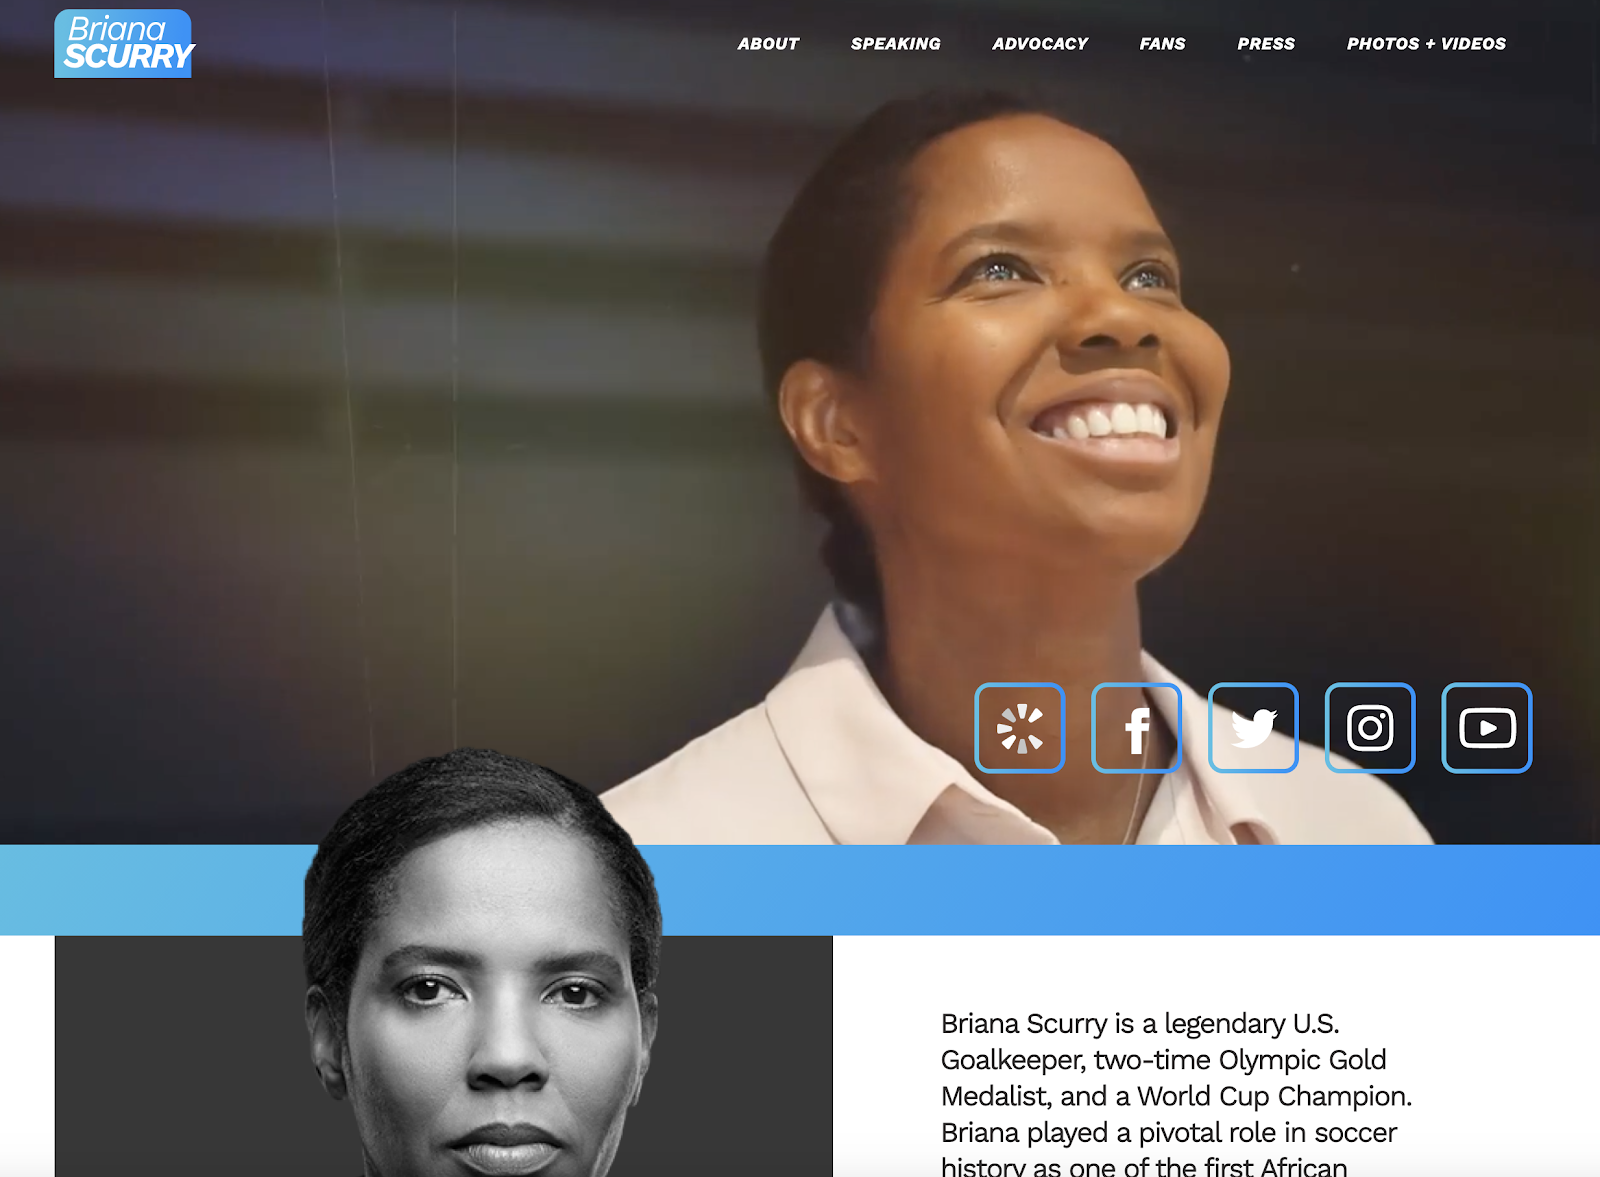 Home page of Briana Scurry's website.